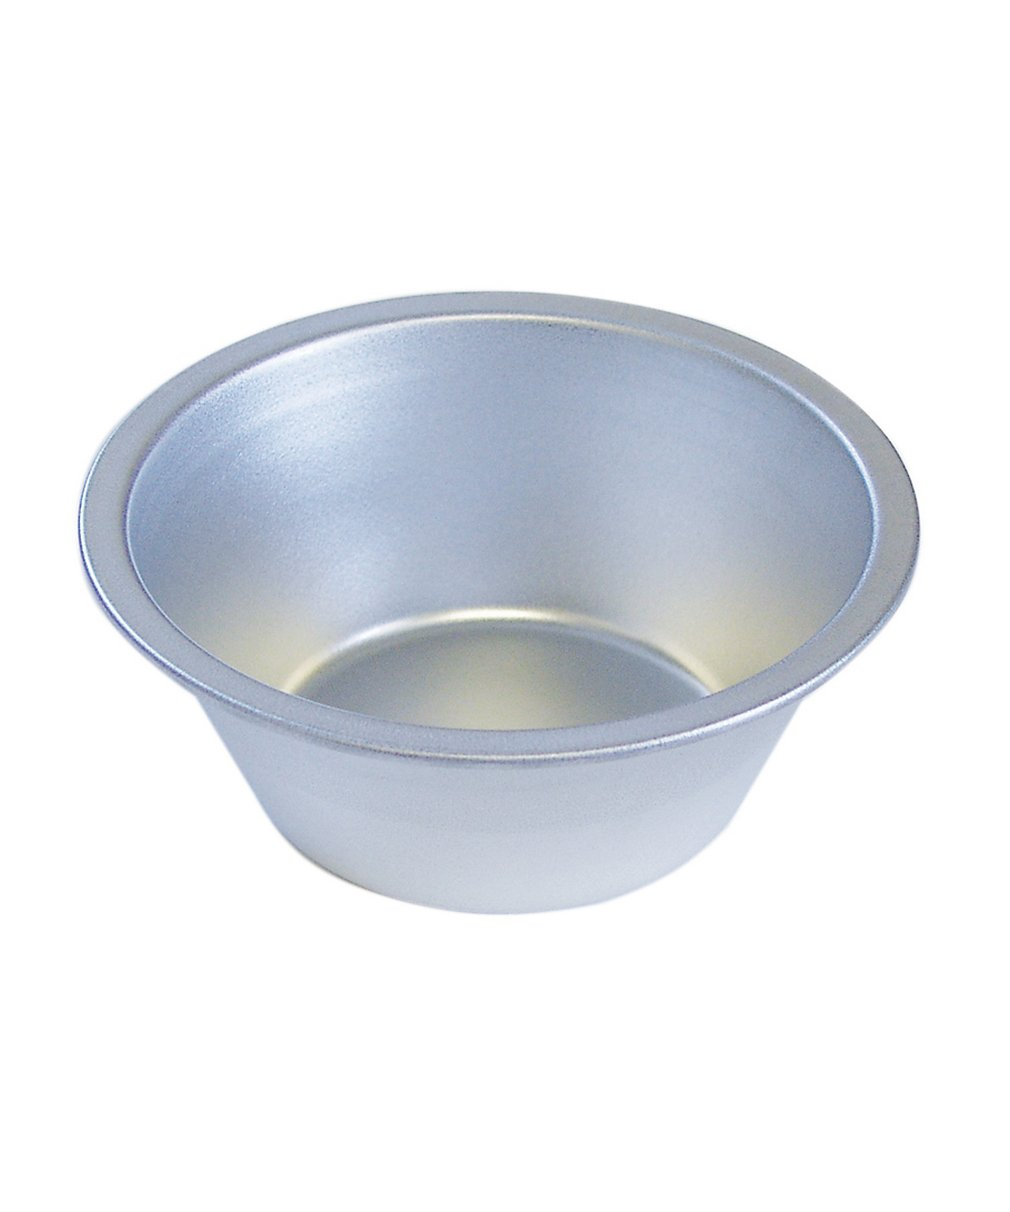 R& M International 2278 Tinplated Steel 5 Diameter, 2 Deep Individual Pie Pan RM-2278